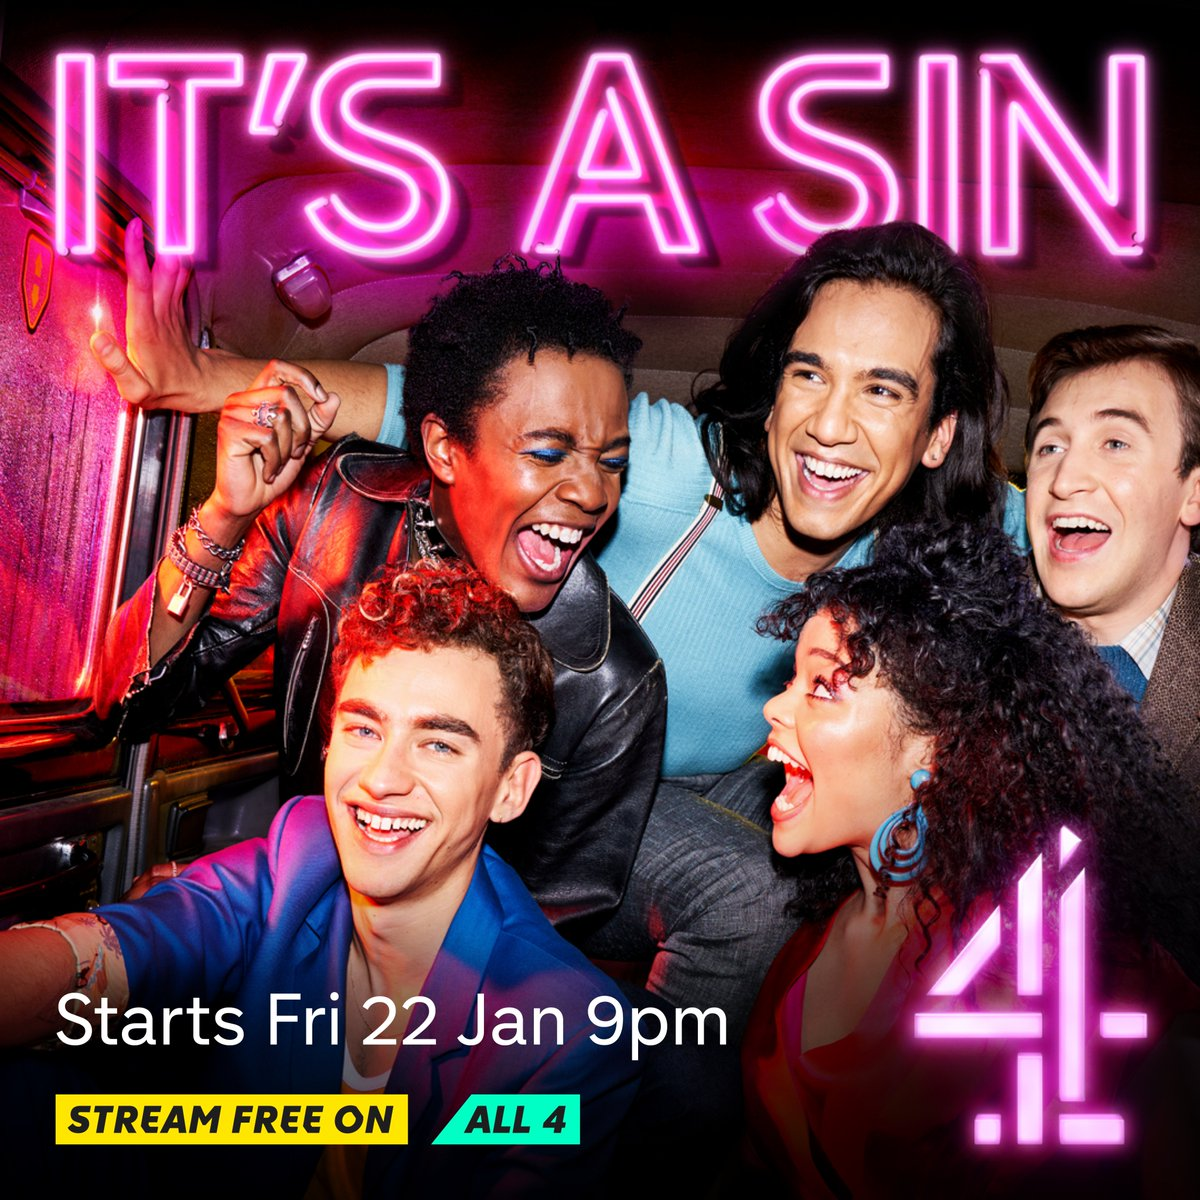 It's official! Channel 4's hotly anticipated new drama #ItsASin from the multi-BAFTA award-winning writer Russell T Davies will air on Friday 22nd Jan at 9pm.